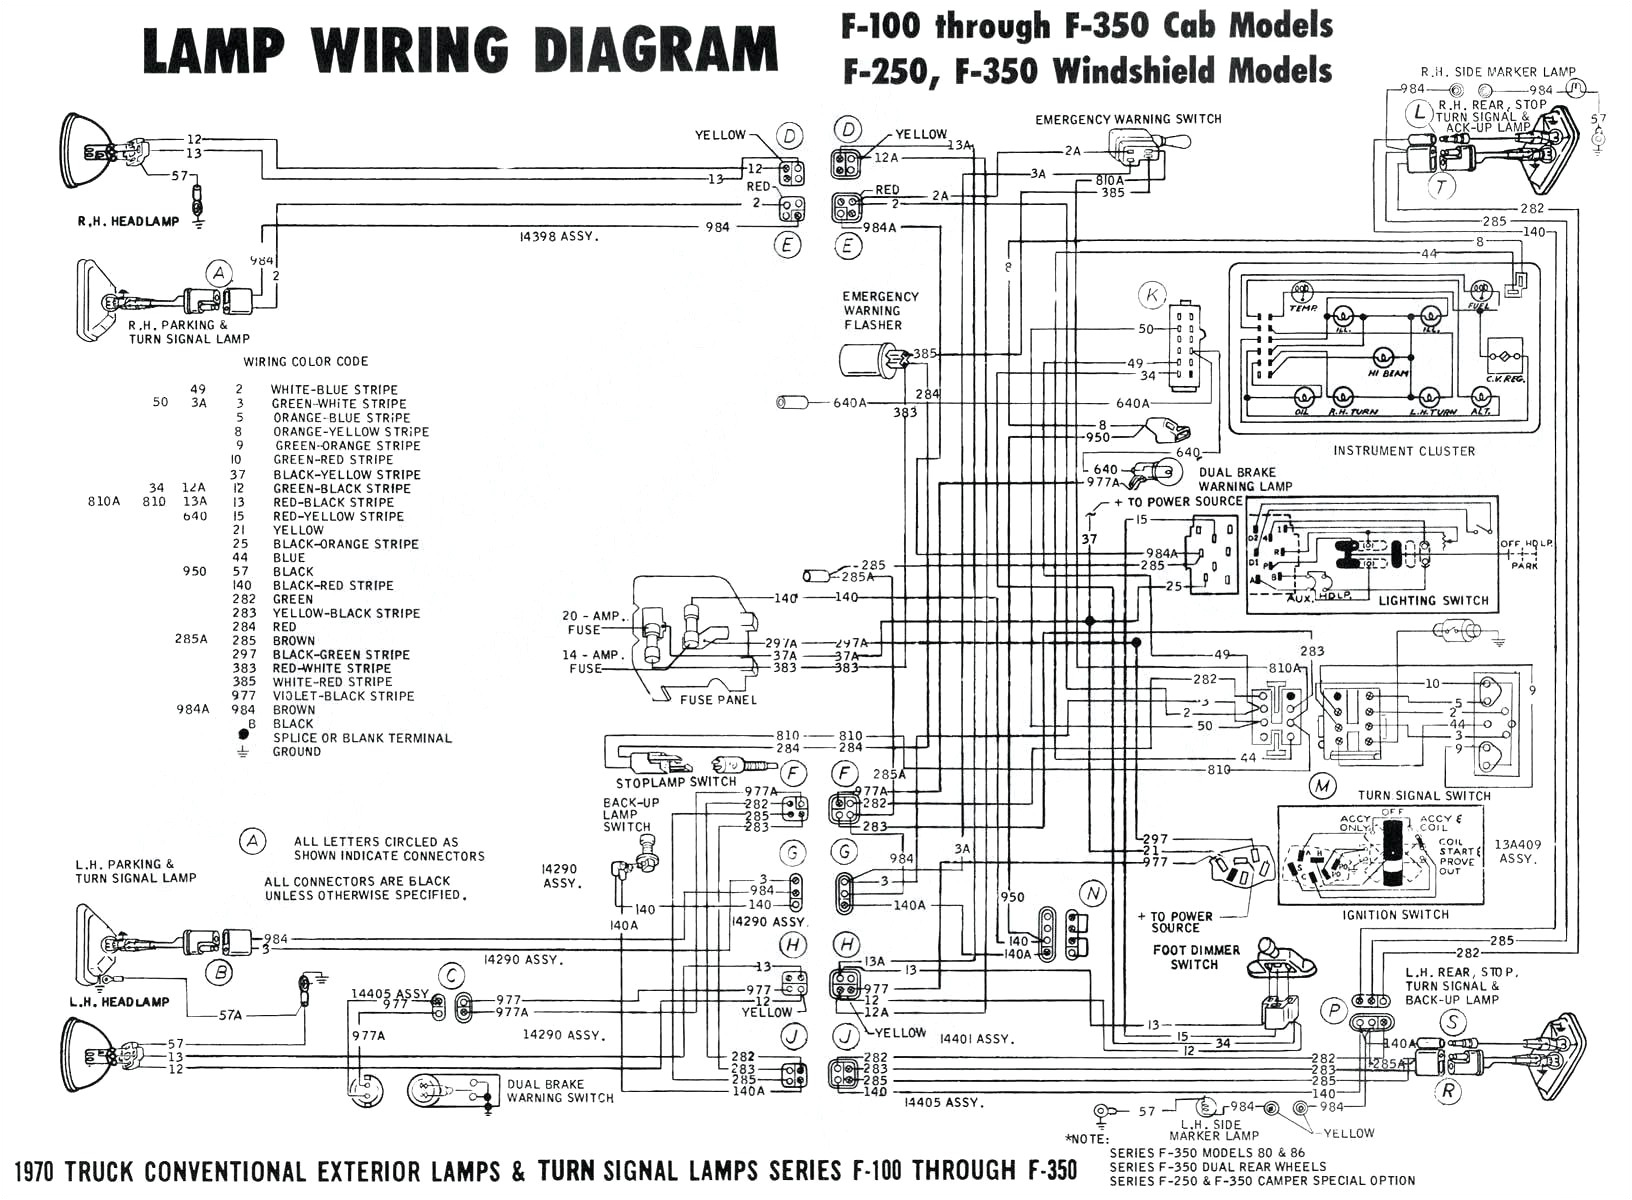 1951 ford wiring harness wiring diagram 1951 ford f3 wiring harness 1951 ferrari wiring harness wiring